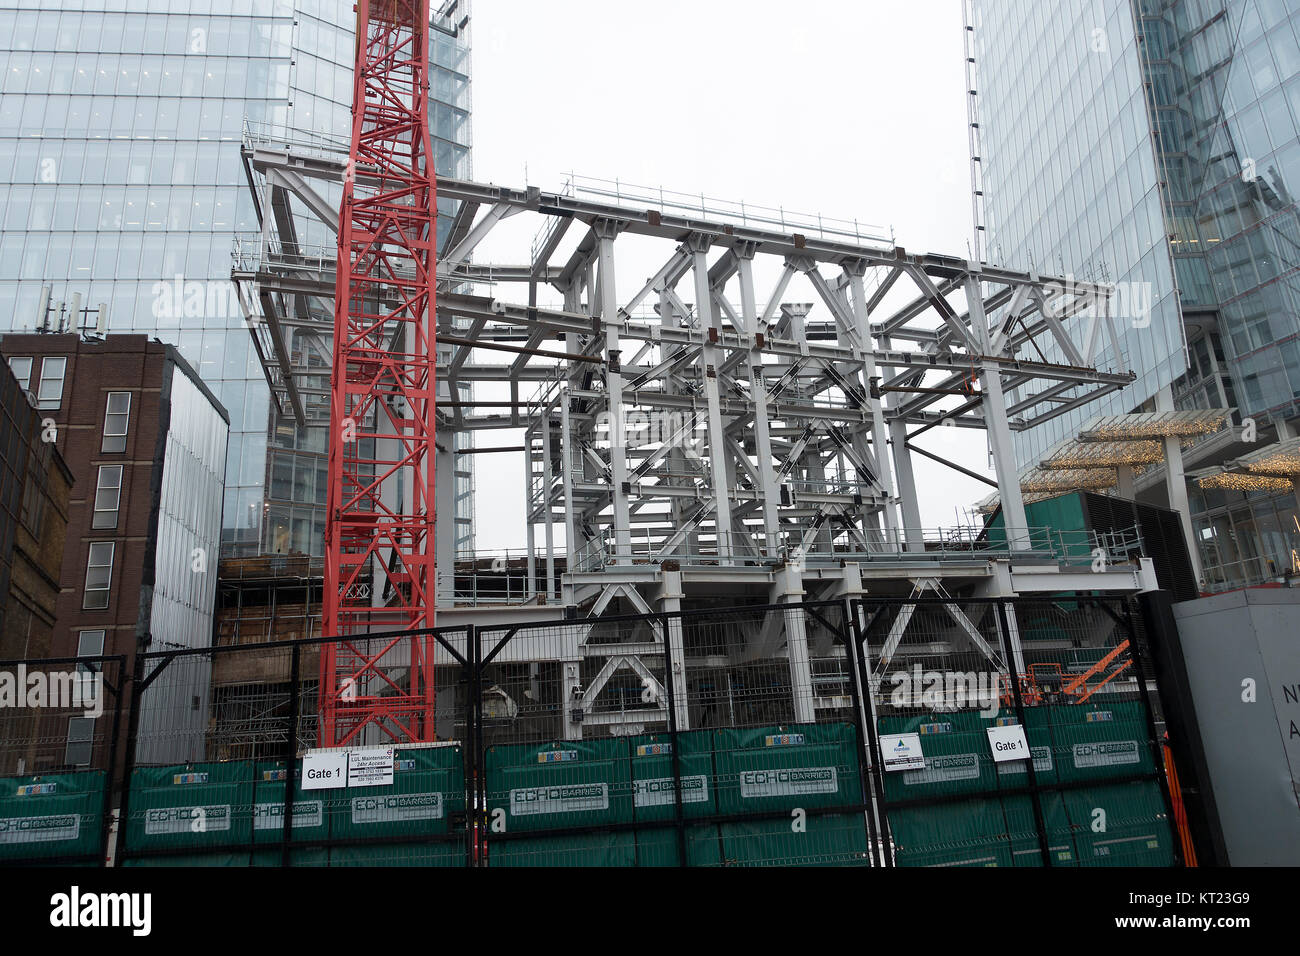 The Steel Framework of a New Apartment Block and Retail Centre next to The Shard Skyscraper in Southwark South Bank - Stock Image